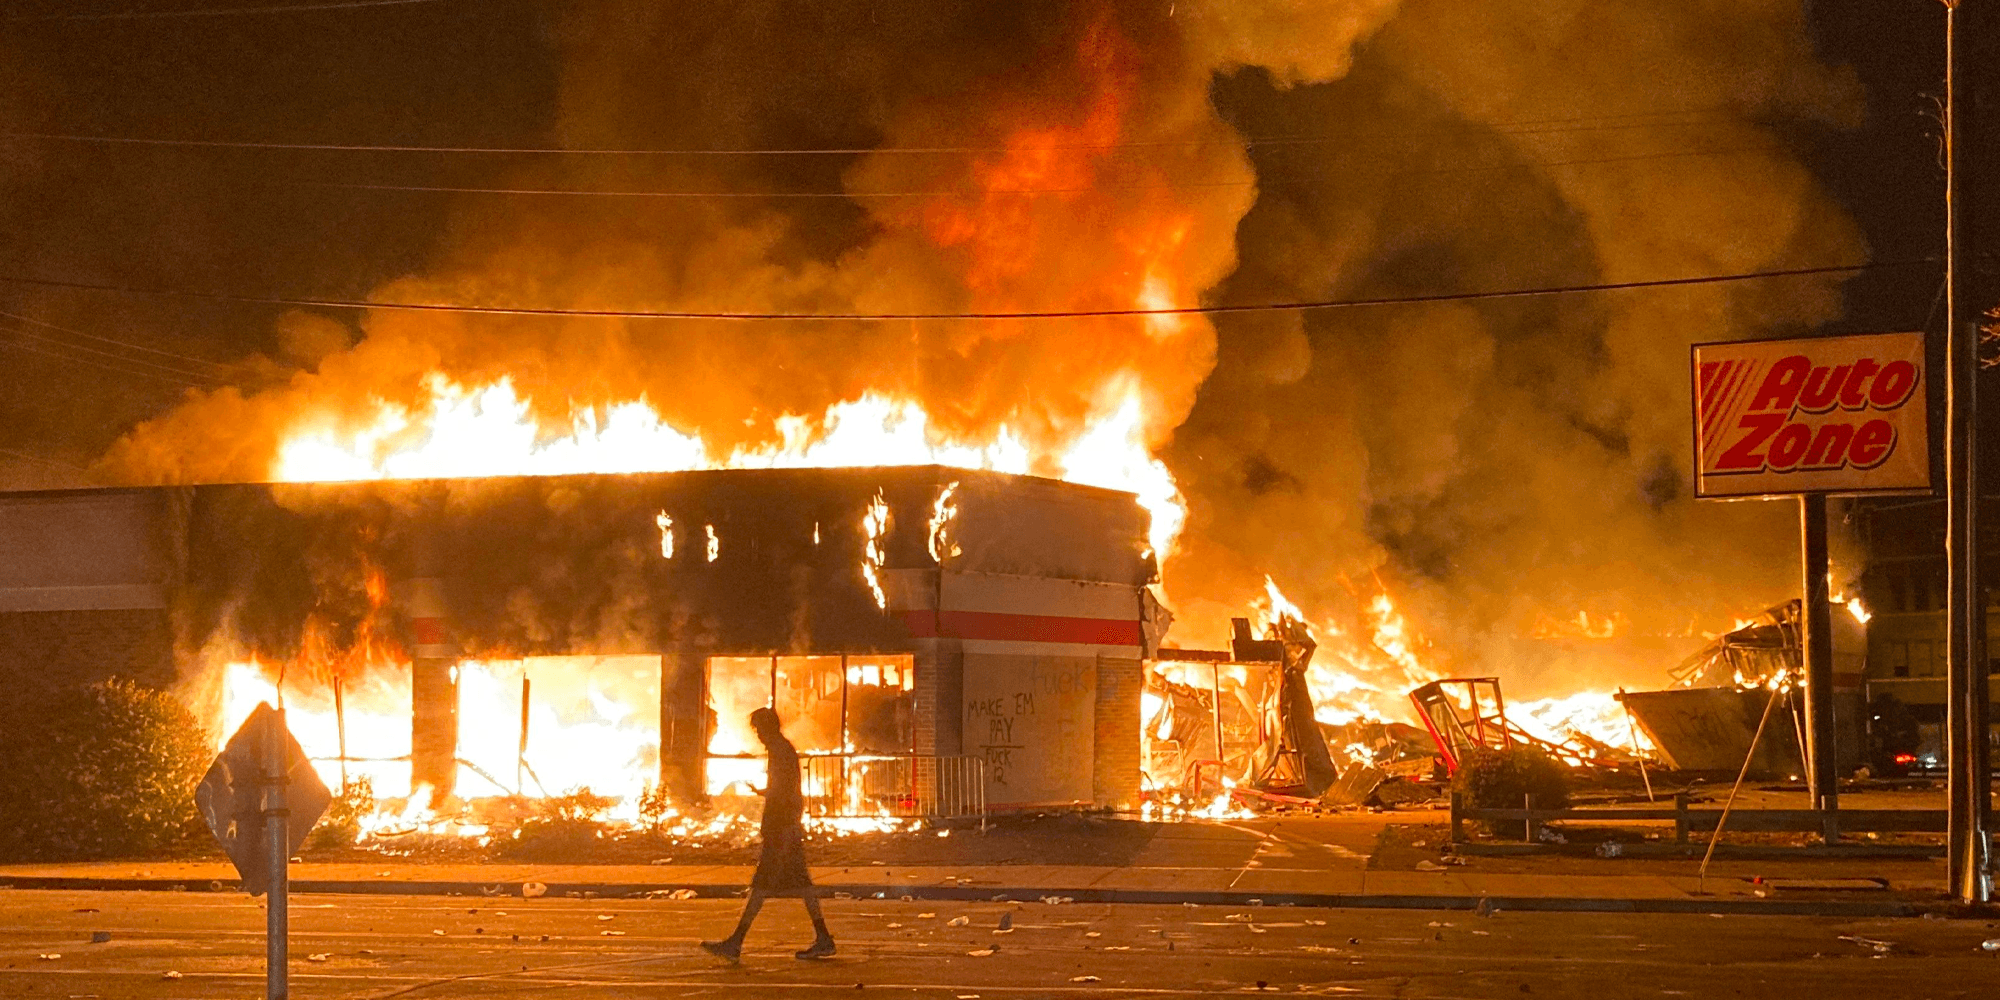 Federal government refuses to give $500m in disaster relief funds to Minnesota following riots